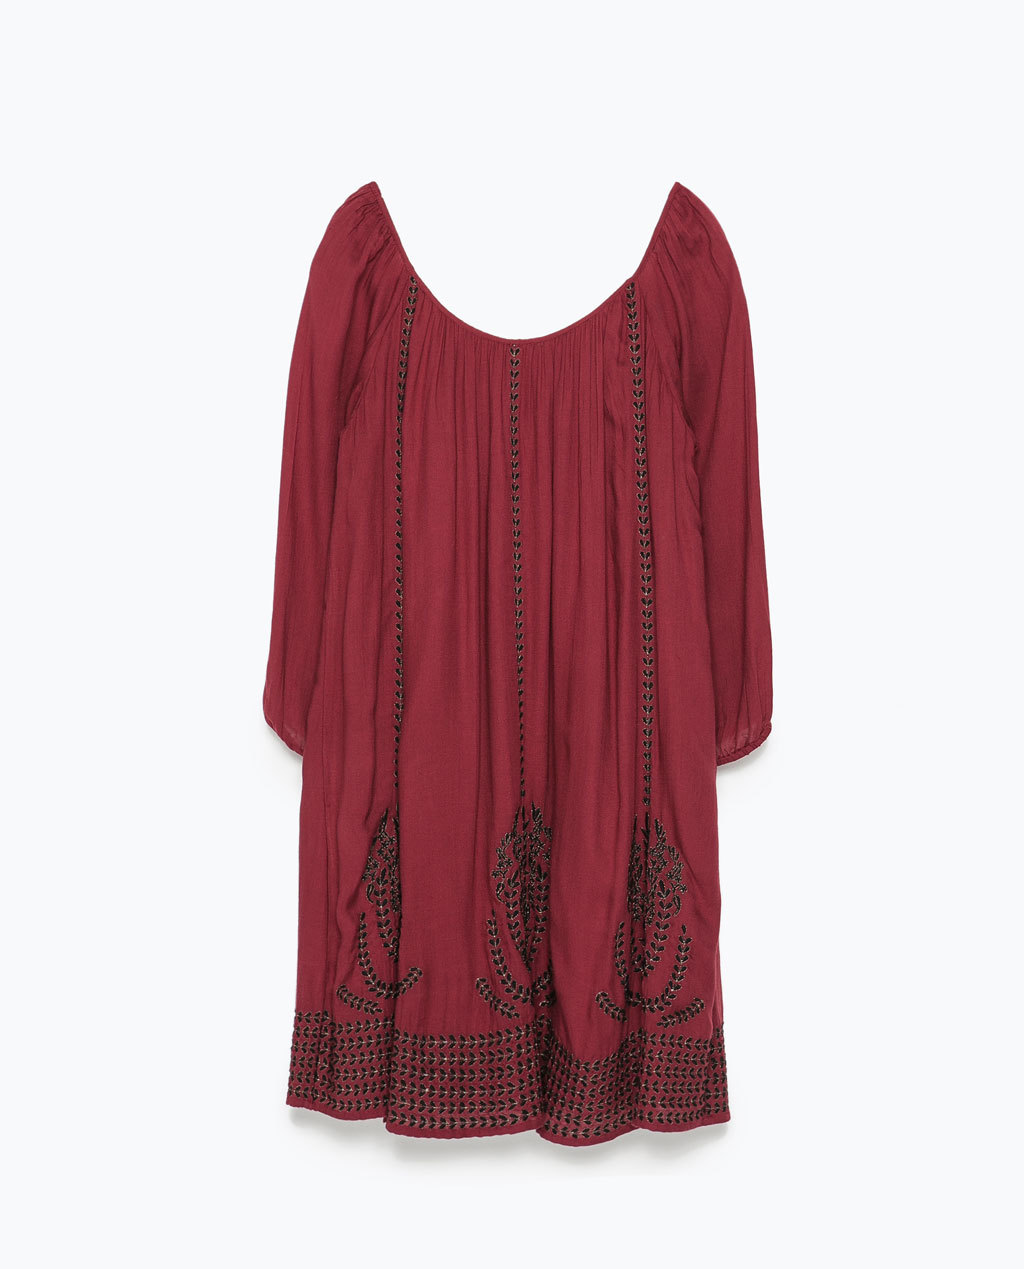 Embroidered Dress - style: smock; length: mid thigh; fit: loose; pattern: plain; sleeve style: balloon; occasions: casual; neckline: scoop; sleeve length: 3/4 length; texture group: cotton feel fabrics; pattern type: fabric; pattern size: standard; embellishment: embroidered; predominant colour: raspberry; season: s/s 2015; wardrobe: highlight